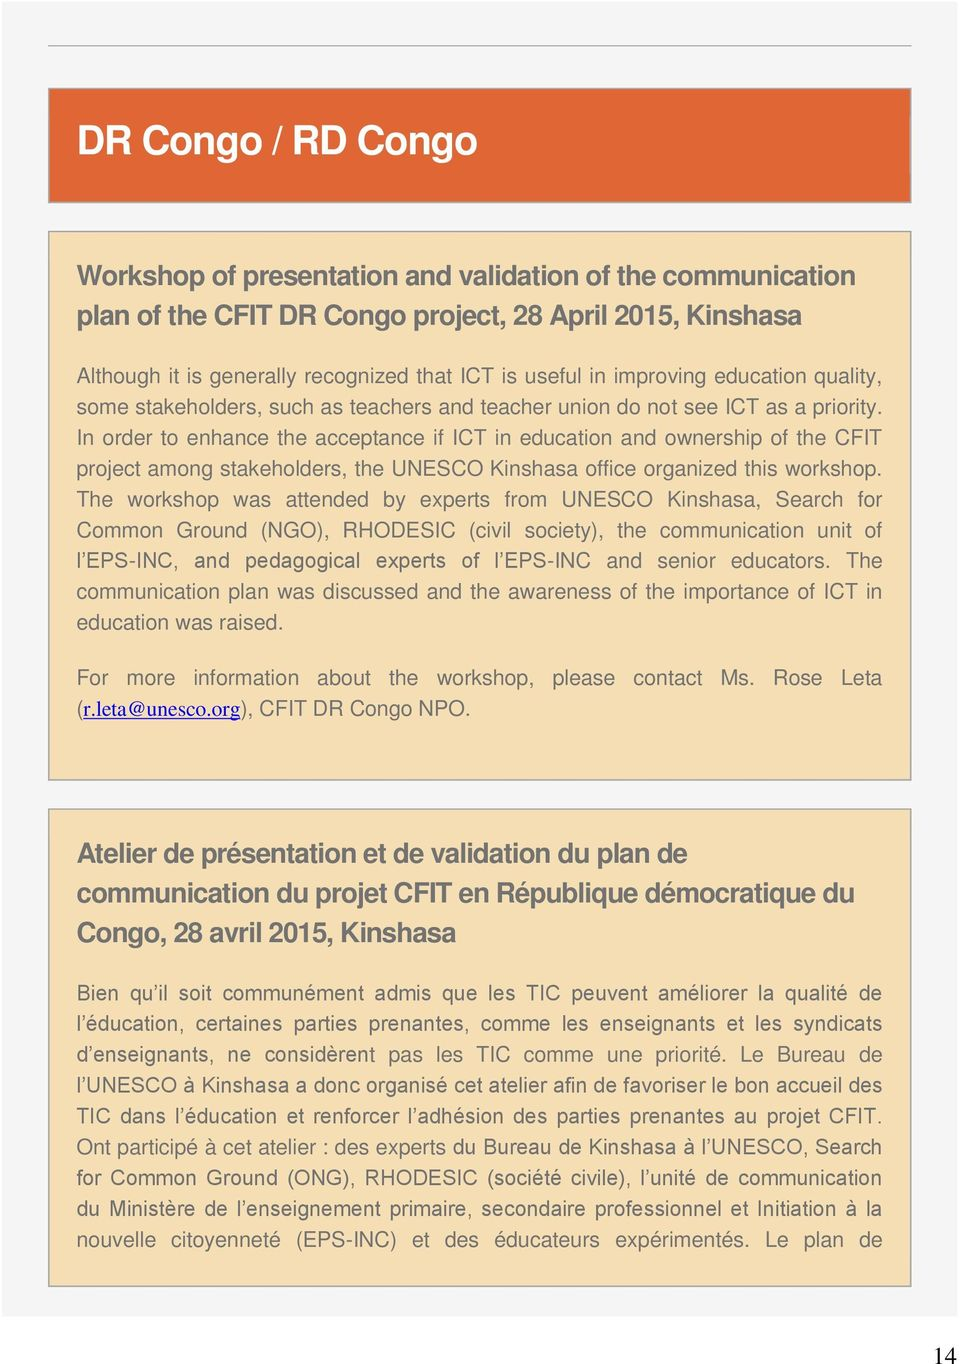 In order to enhance the acceptance if ICT in education and ownership of the CFIT project among stakeholders, the UNESCO Kinshasa office organized this workshop.